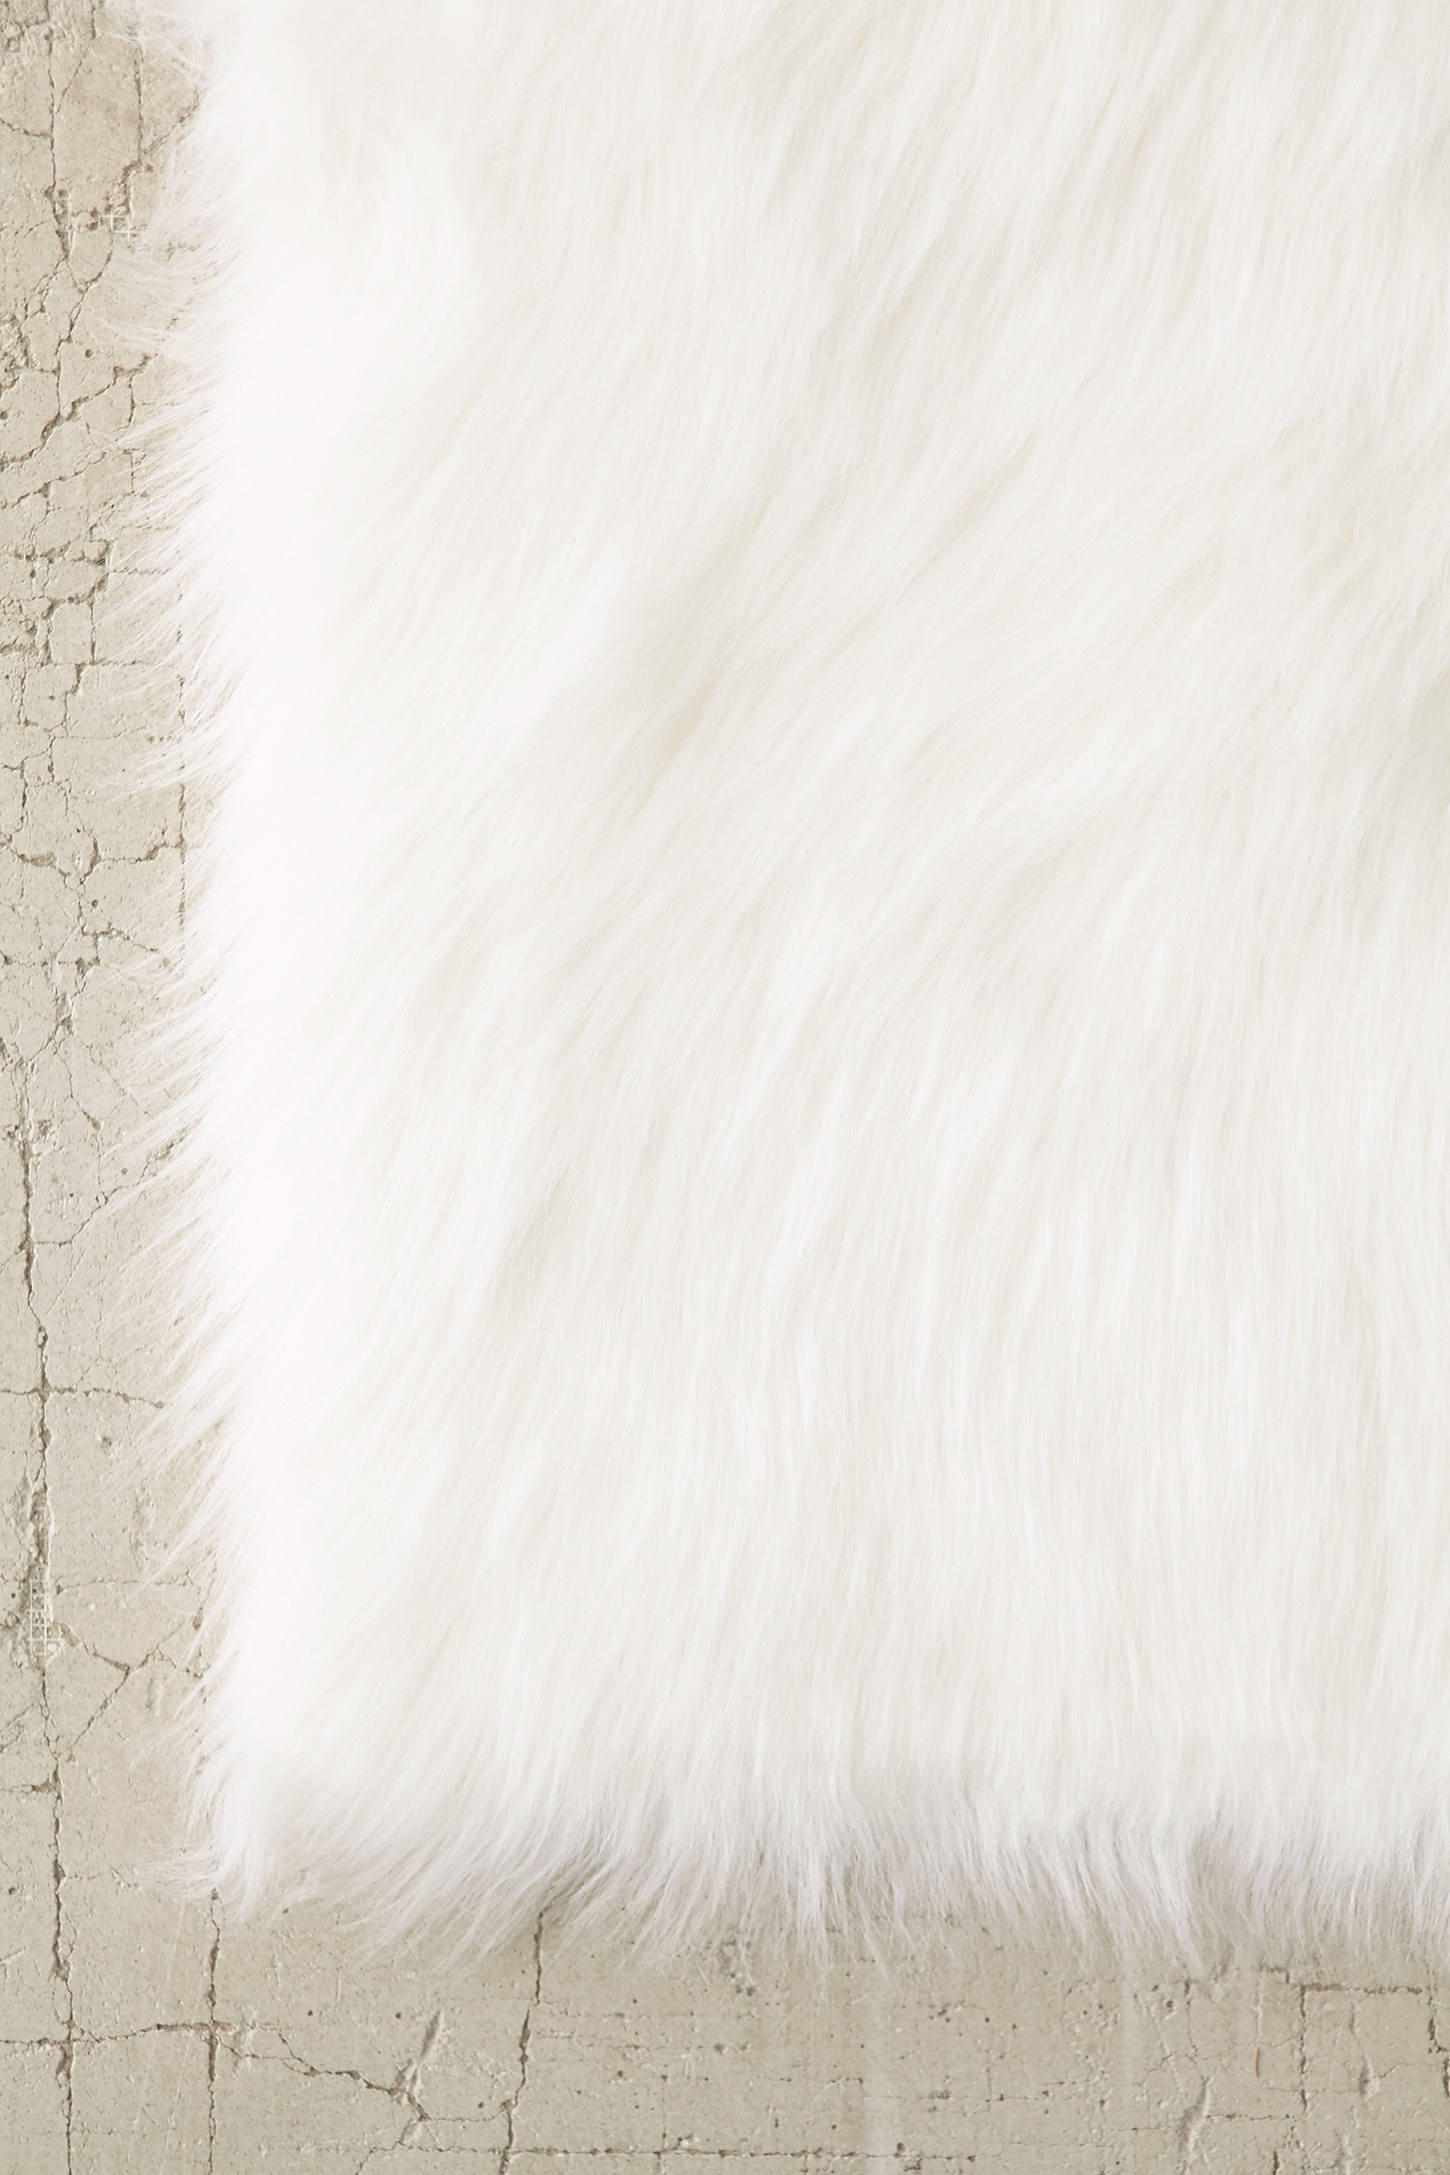 Slide View: 3: Faux Sheep Skin Rug